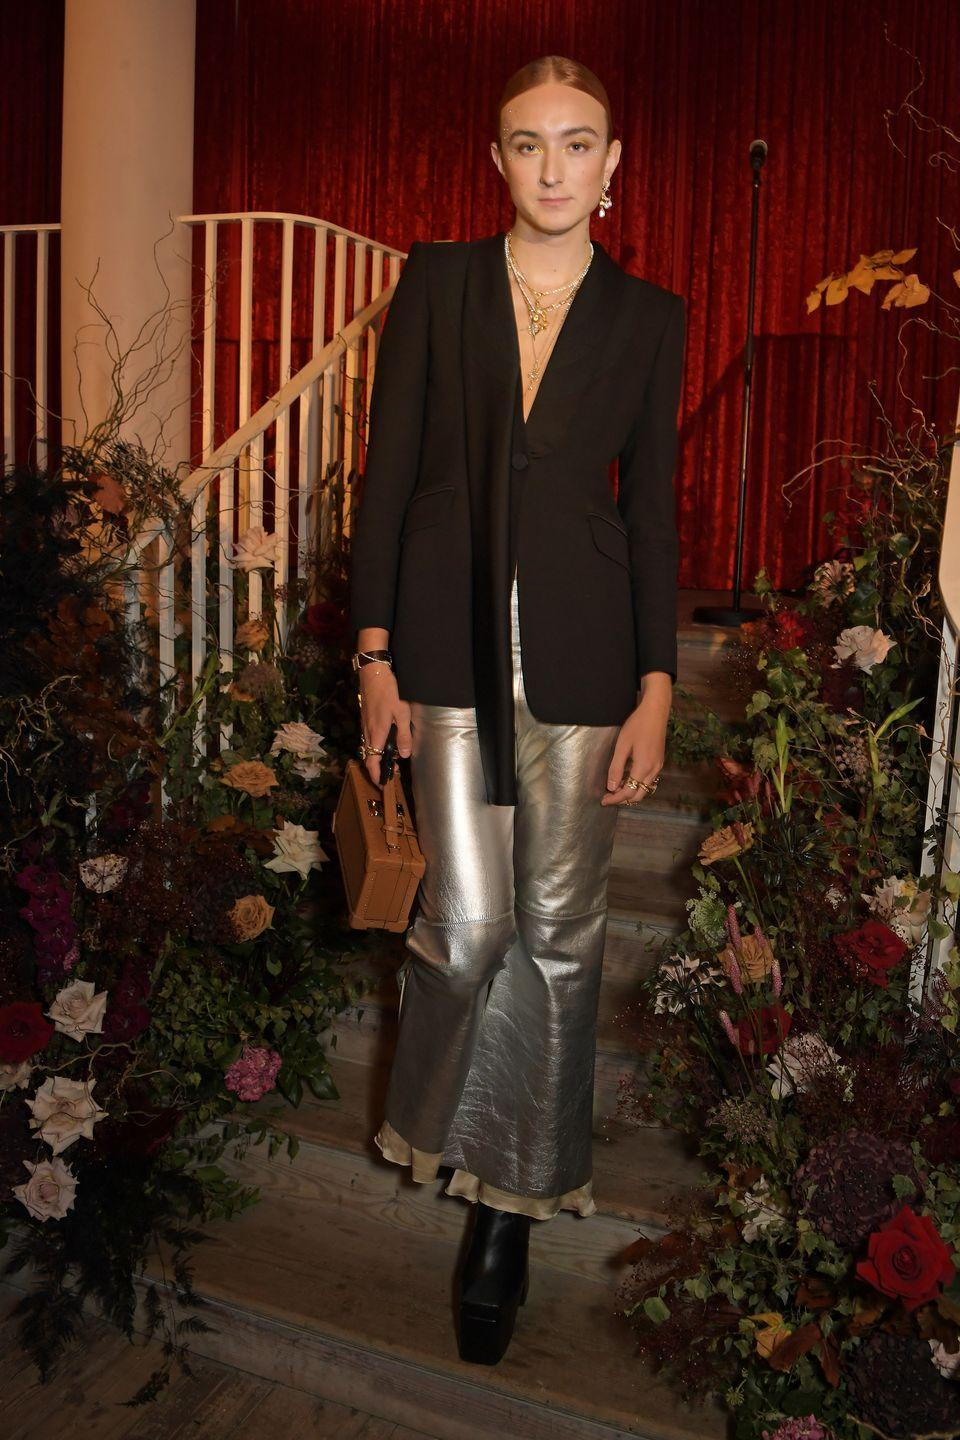 """<p><strong>22 September</strong></p><p>Harris Reed wore metallic trousers and pieces from their <a href=""""https://www.harpersbazaar.com/uk/fashion/jewellery-watches/a37594255/harris-reed-missoma-jewellery-interview/"""" rel=""""nofollow noopener"""" target=""""_blank"""" data-ylk=""""slk:new jewellery collaboration with Missoma"""" class=""""link rapid-noclick-resp"""">new jewellery collaboration with Missoma</a> to celebrate the launch of the collection at Old Sessions House in London. </p>"""